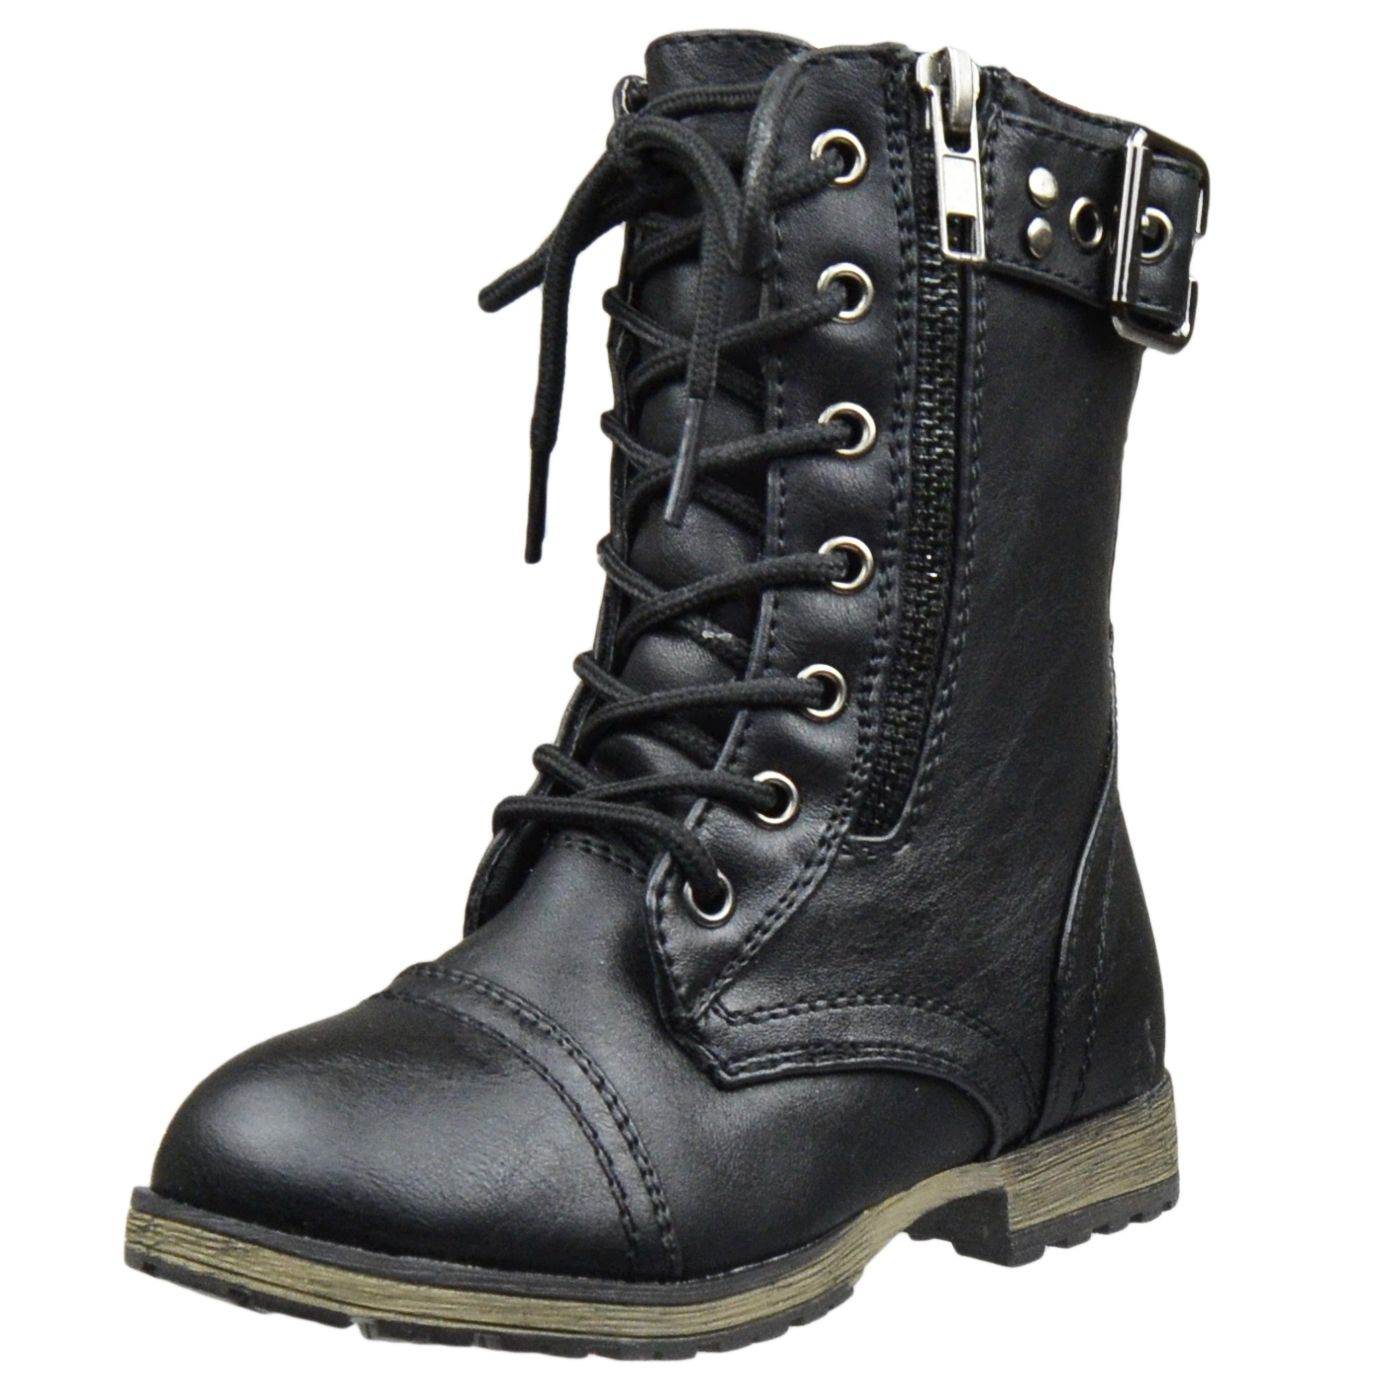 Kids Mid Calf Boots Buckle Accent Lace Up Combat Boots Black ...